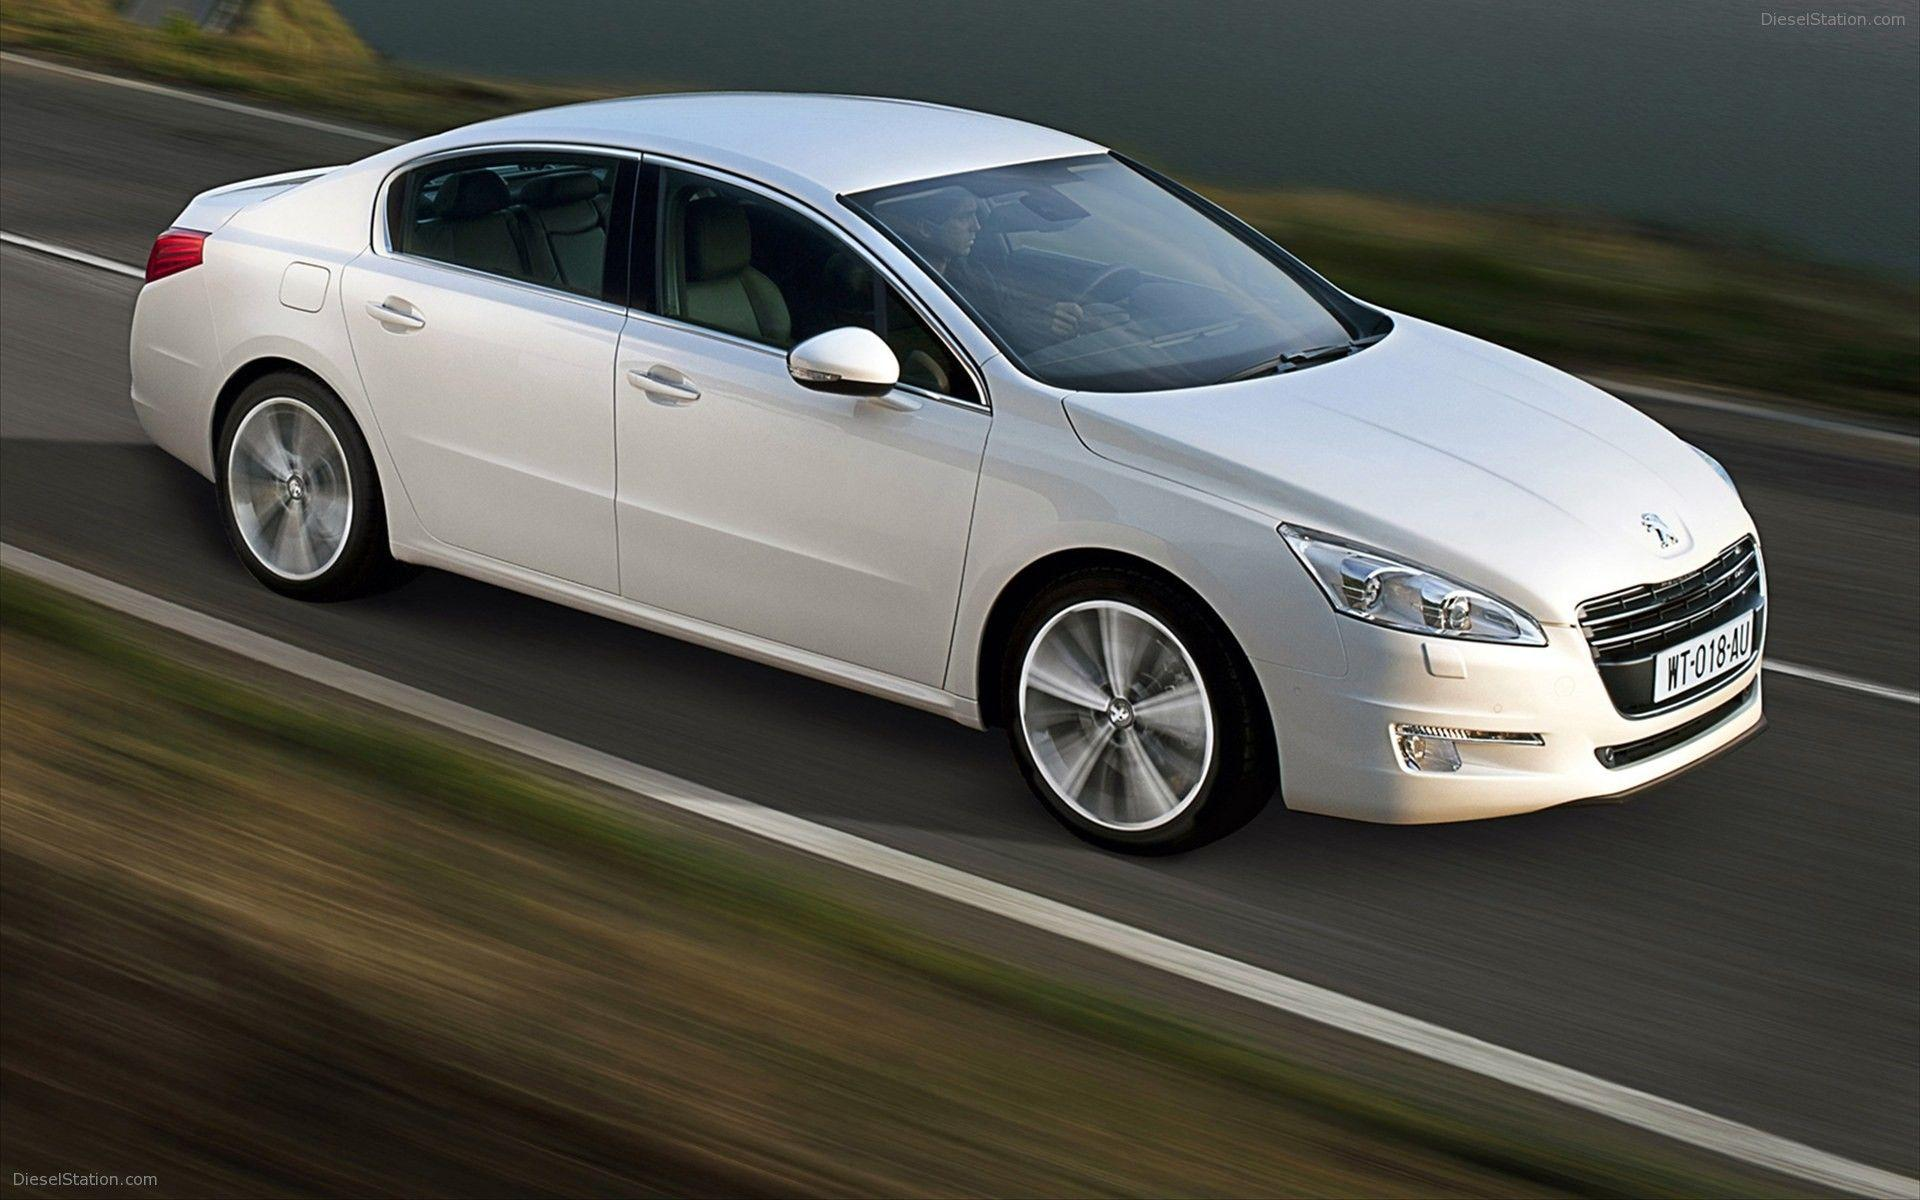 Peugeot 508 2011 Widescreen Exotic Car Wallpapers of 14 : Diesel